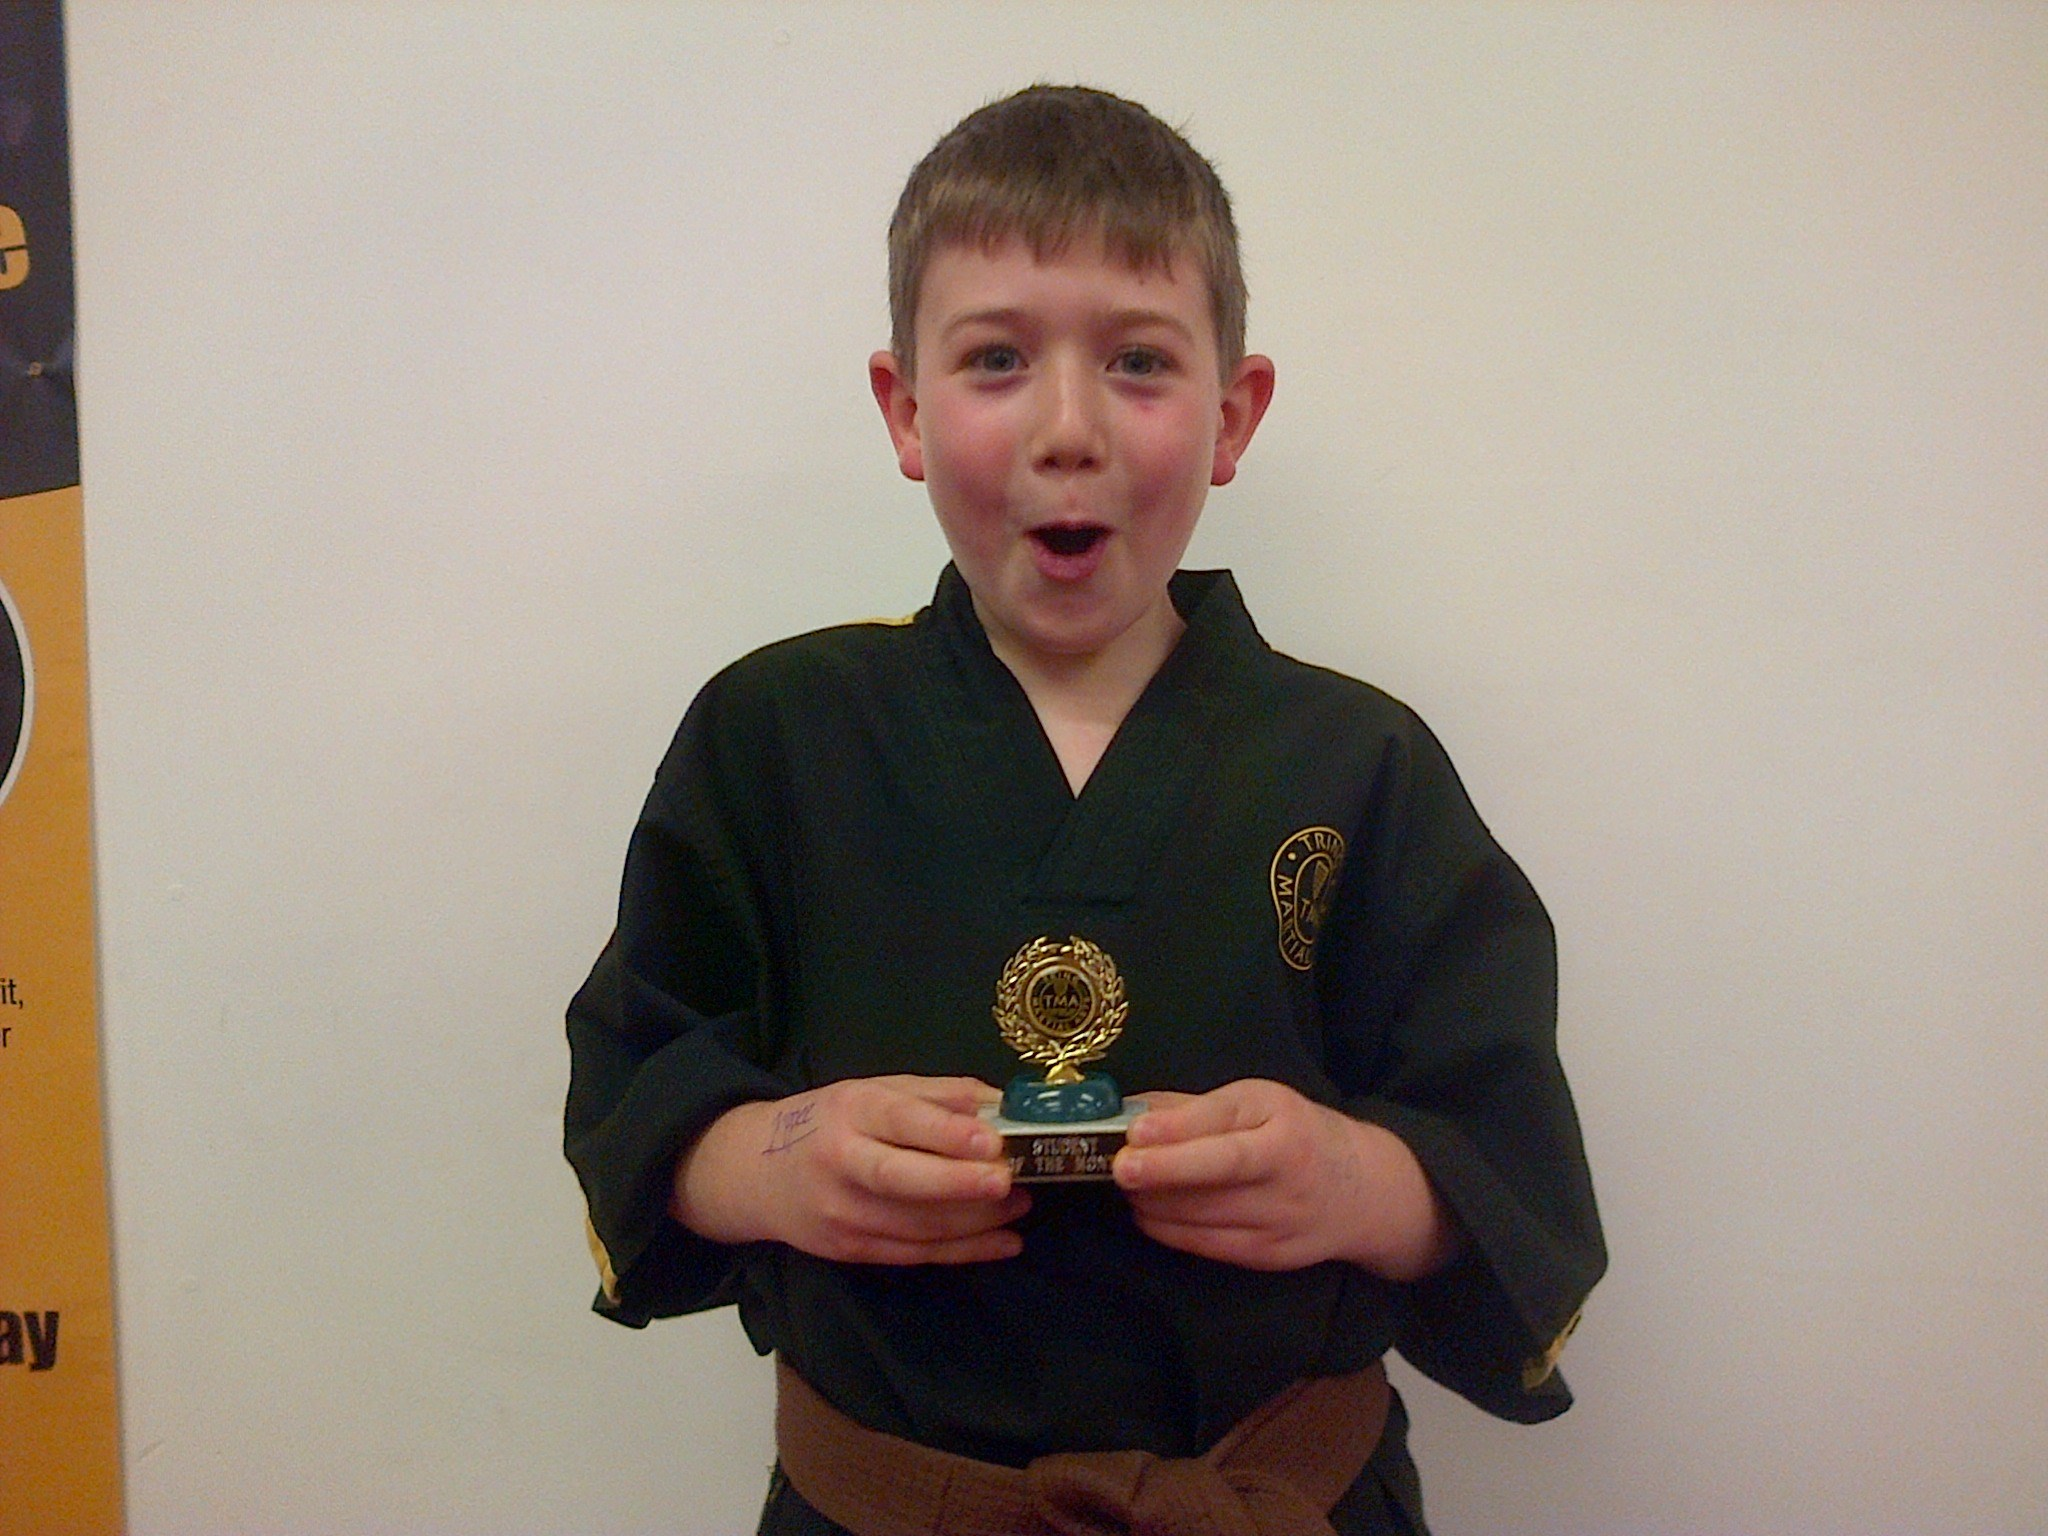 Ollie Gardiner receiving Student of the Month at Tring Martial Arts Academy